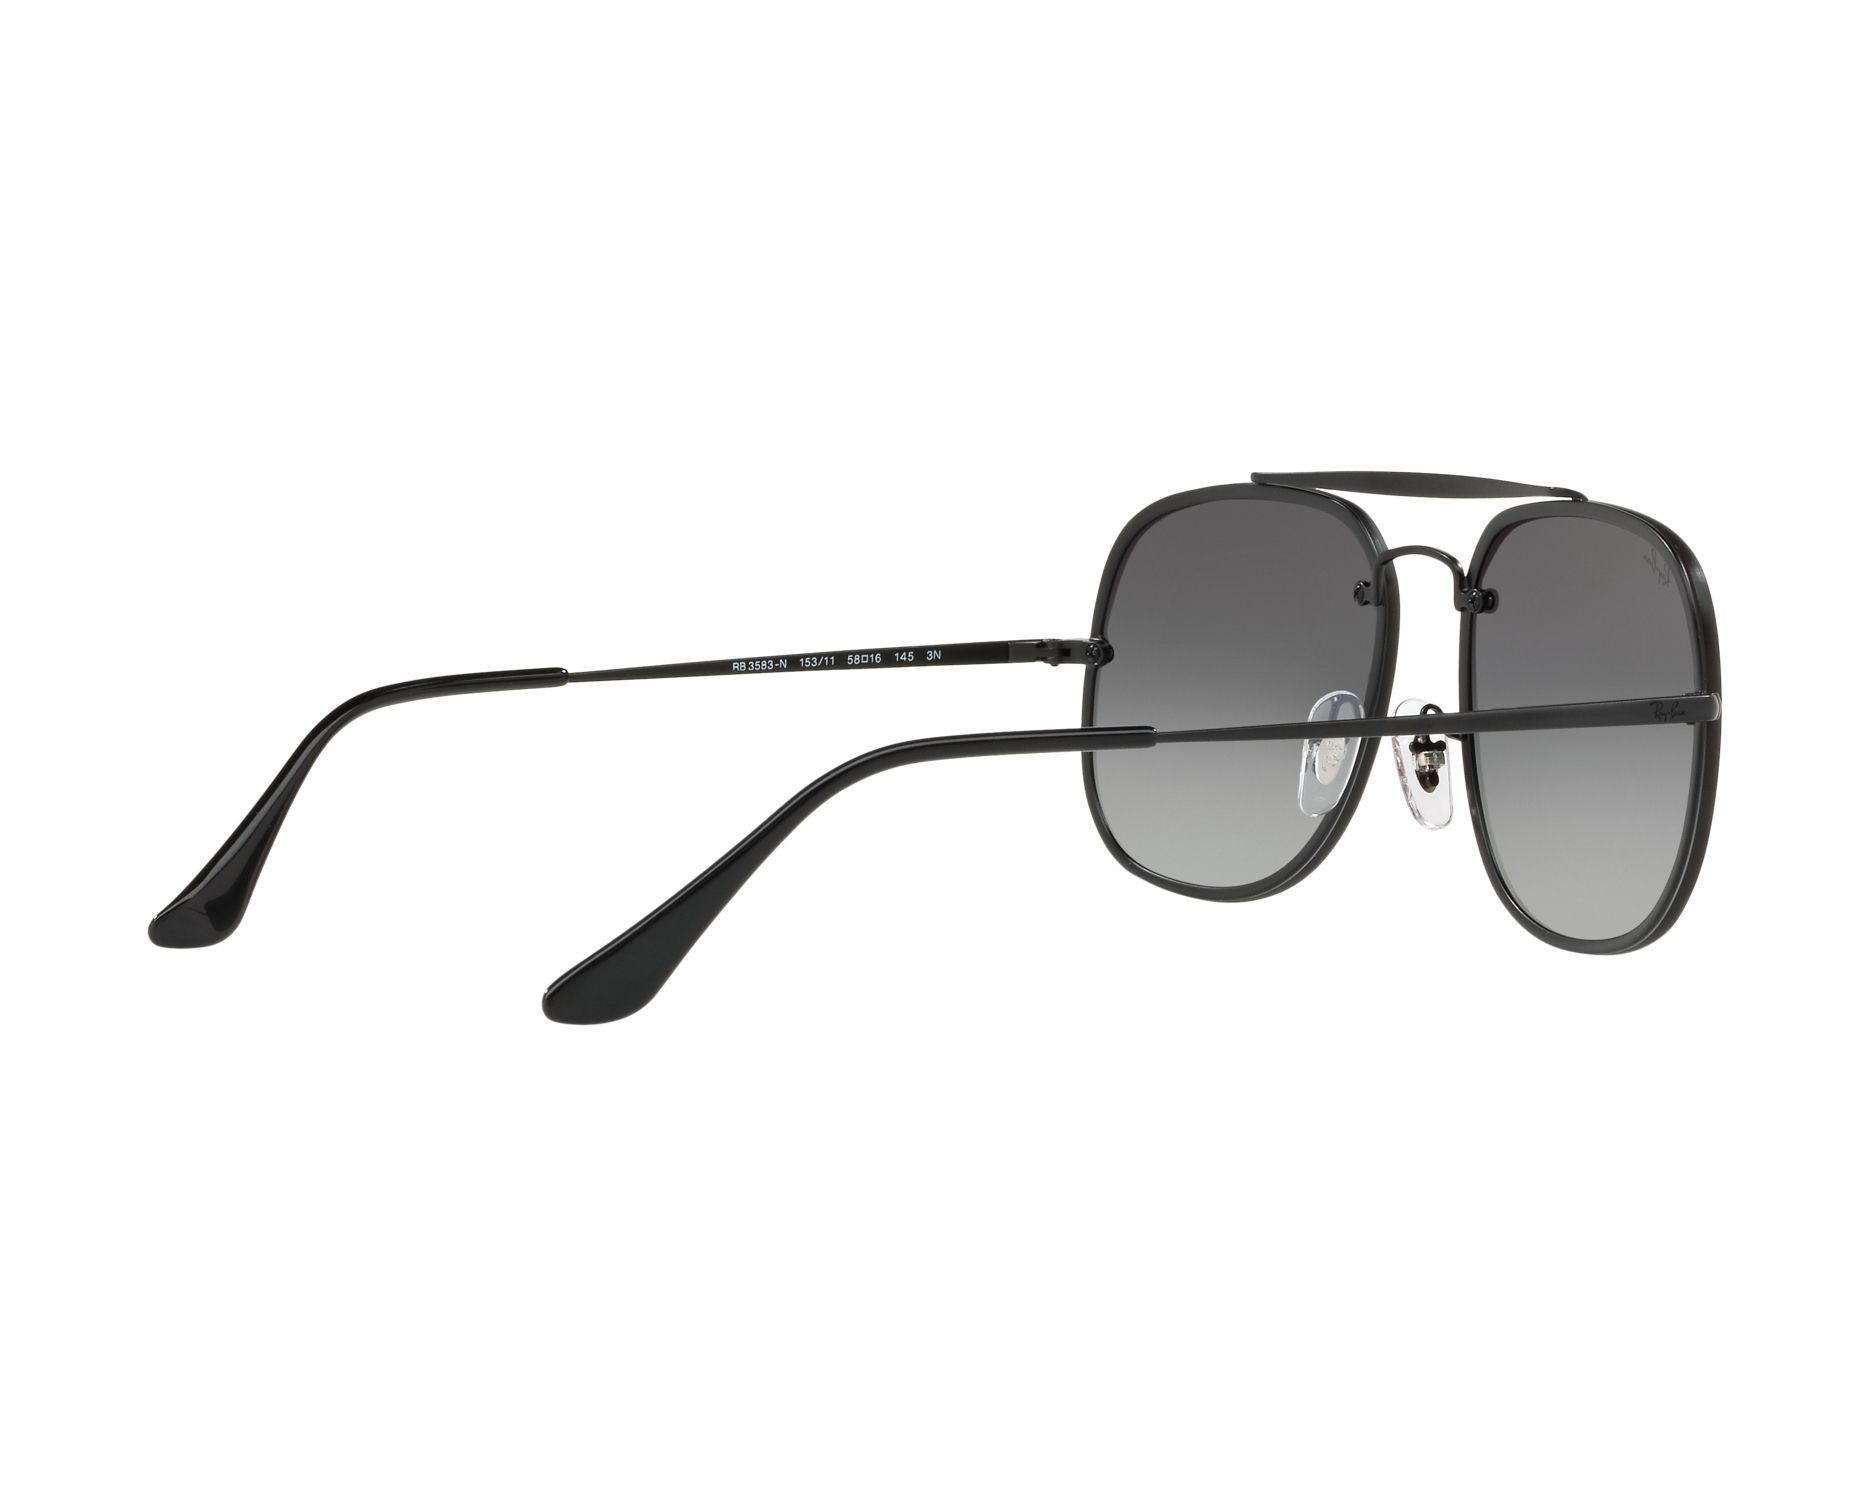 e24d8d1a774 Sunglasses Ray-Ban RB-3583-N 153 11 58-16 Black